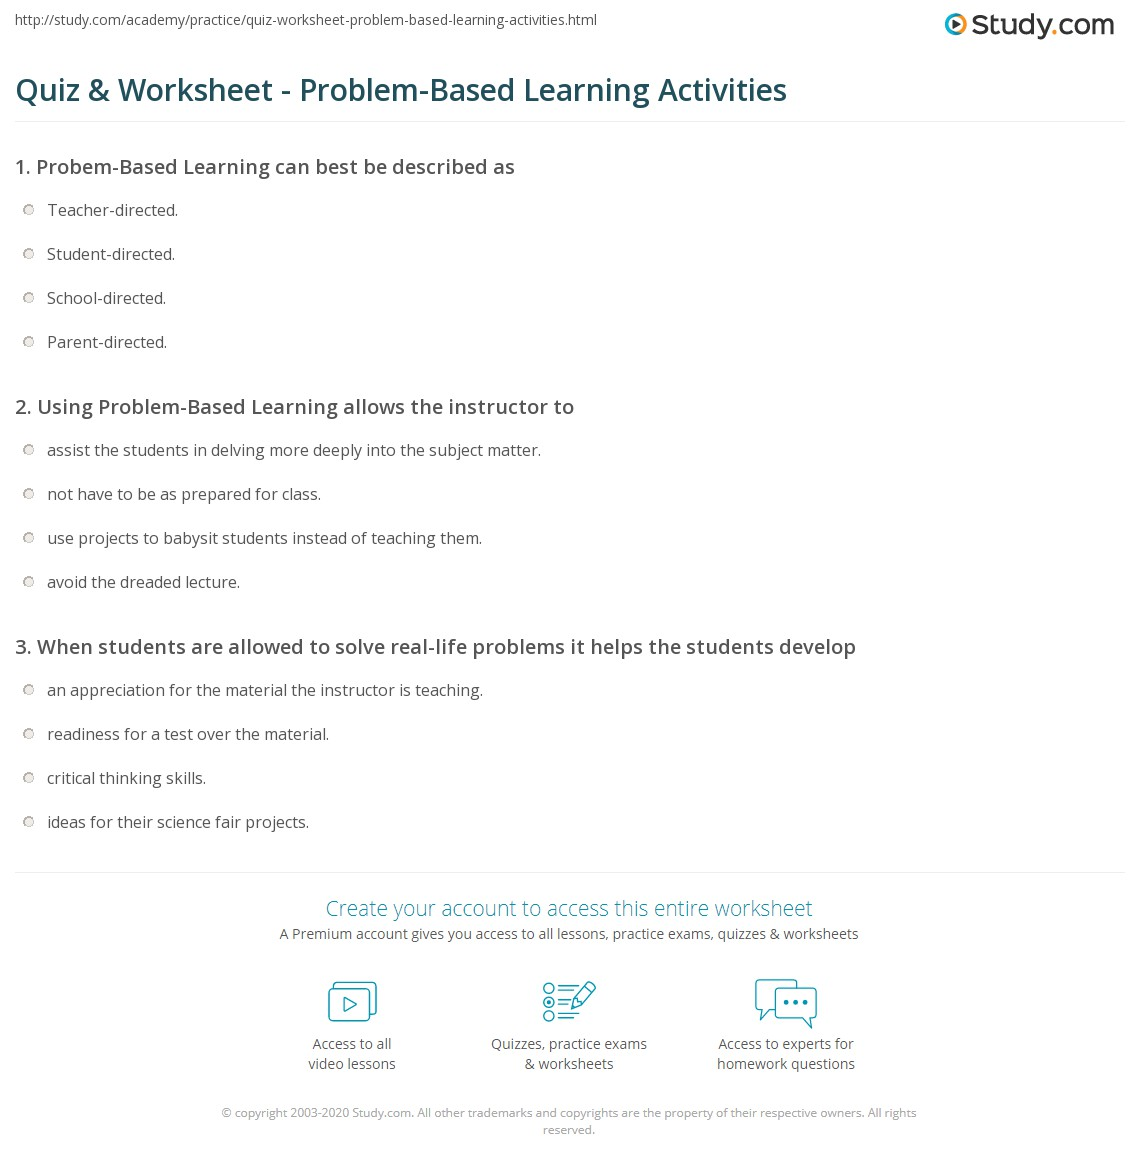 Quiz Worksheet Problem Based Learning Activities Study